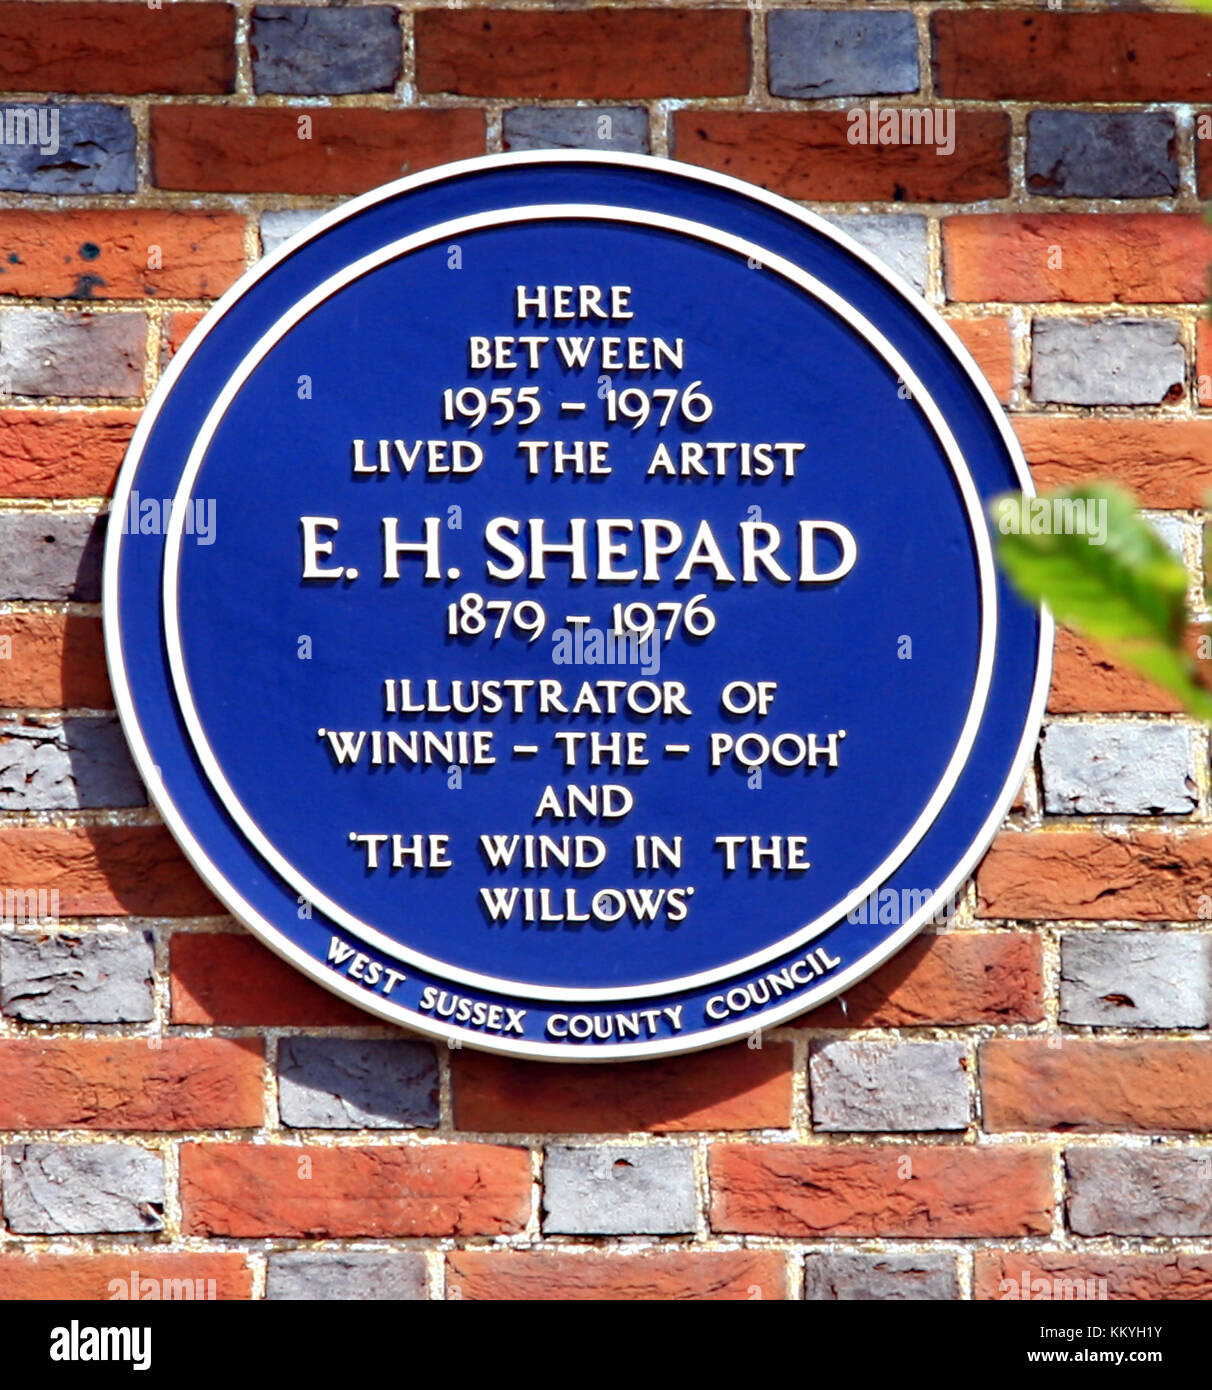 Blue plaque on the home of E H Shepard from 1955 until 1976 at Lodsworth in West Sussex  illustrator of Winnie the - Stock Image